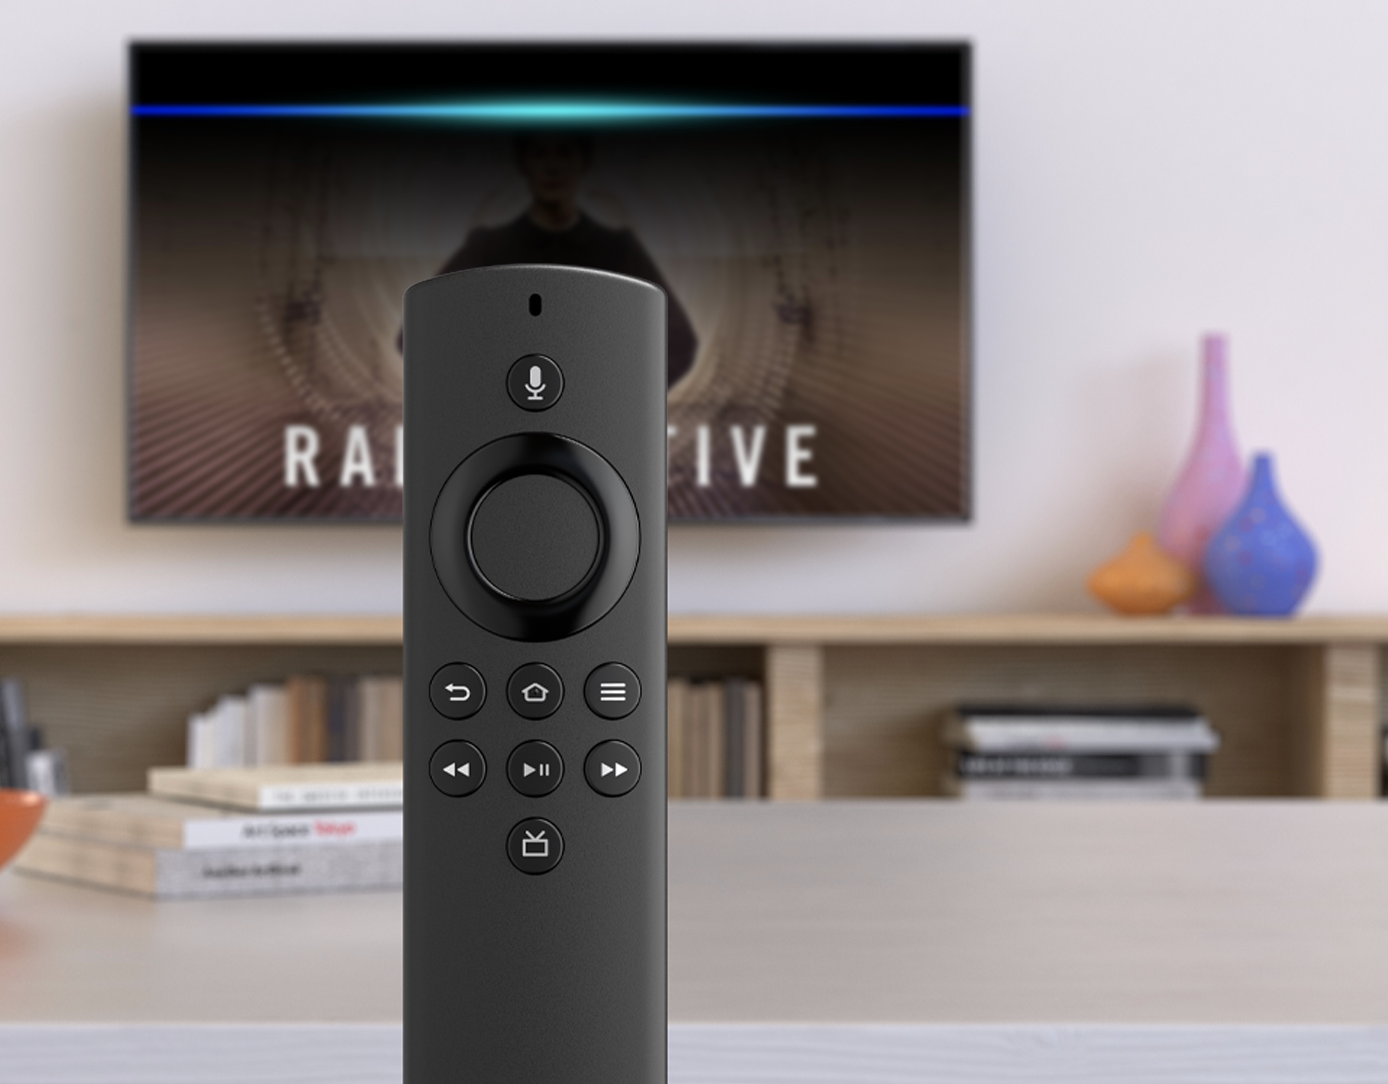 A small slim black remote with controls for the television